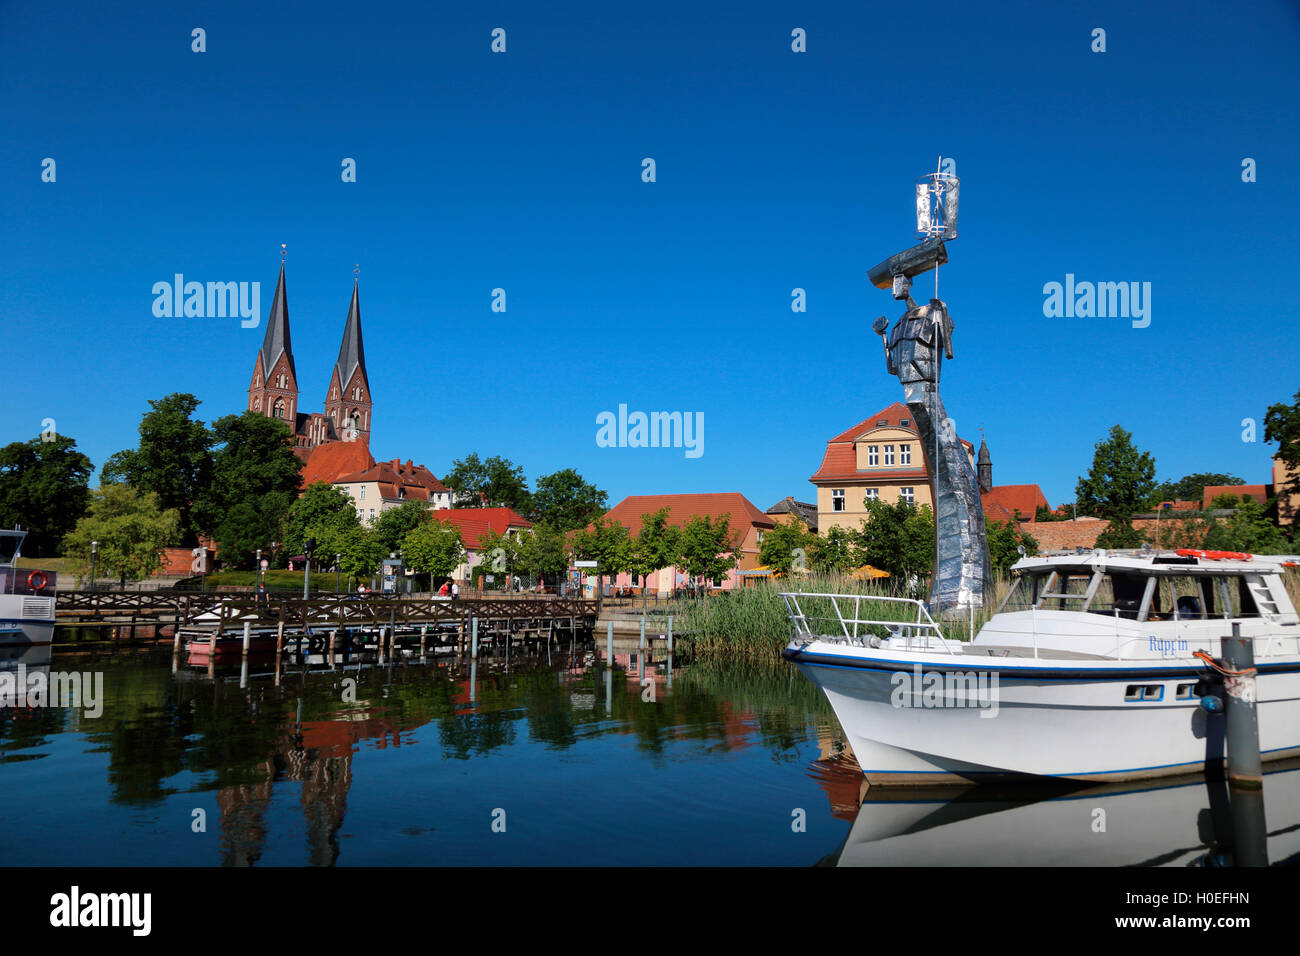 Neuruppin Ruppiner See Parzival am See Klosterkirche Sankt Trinitatis - Stock Image